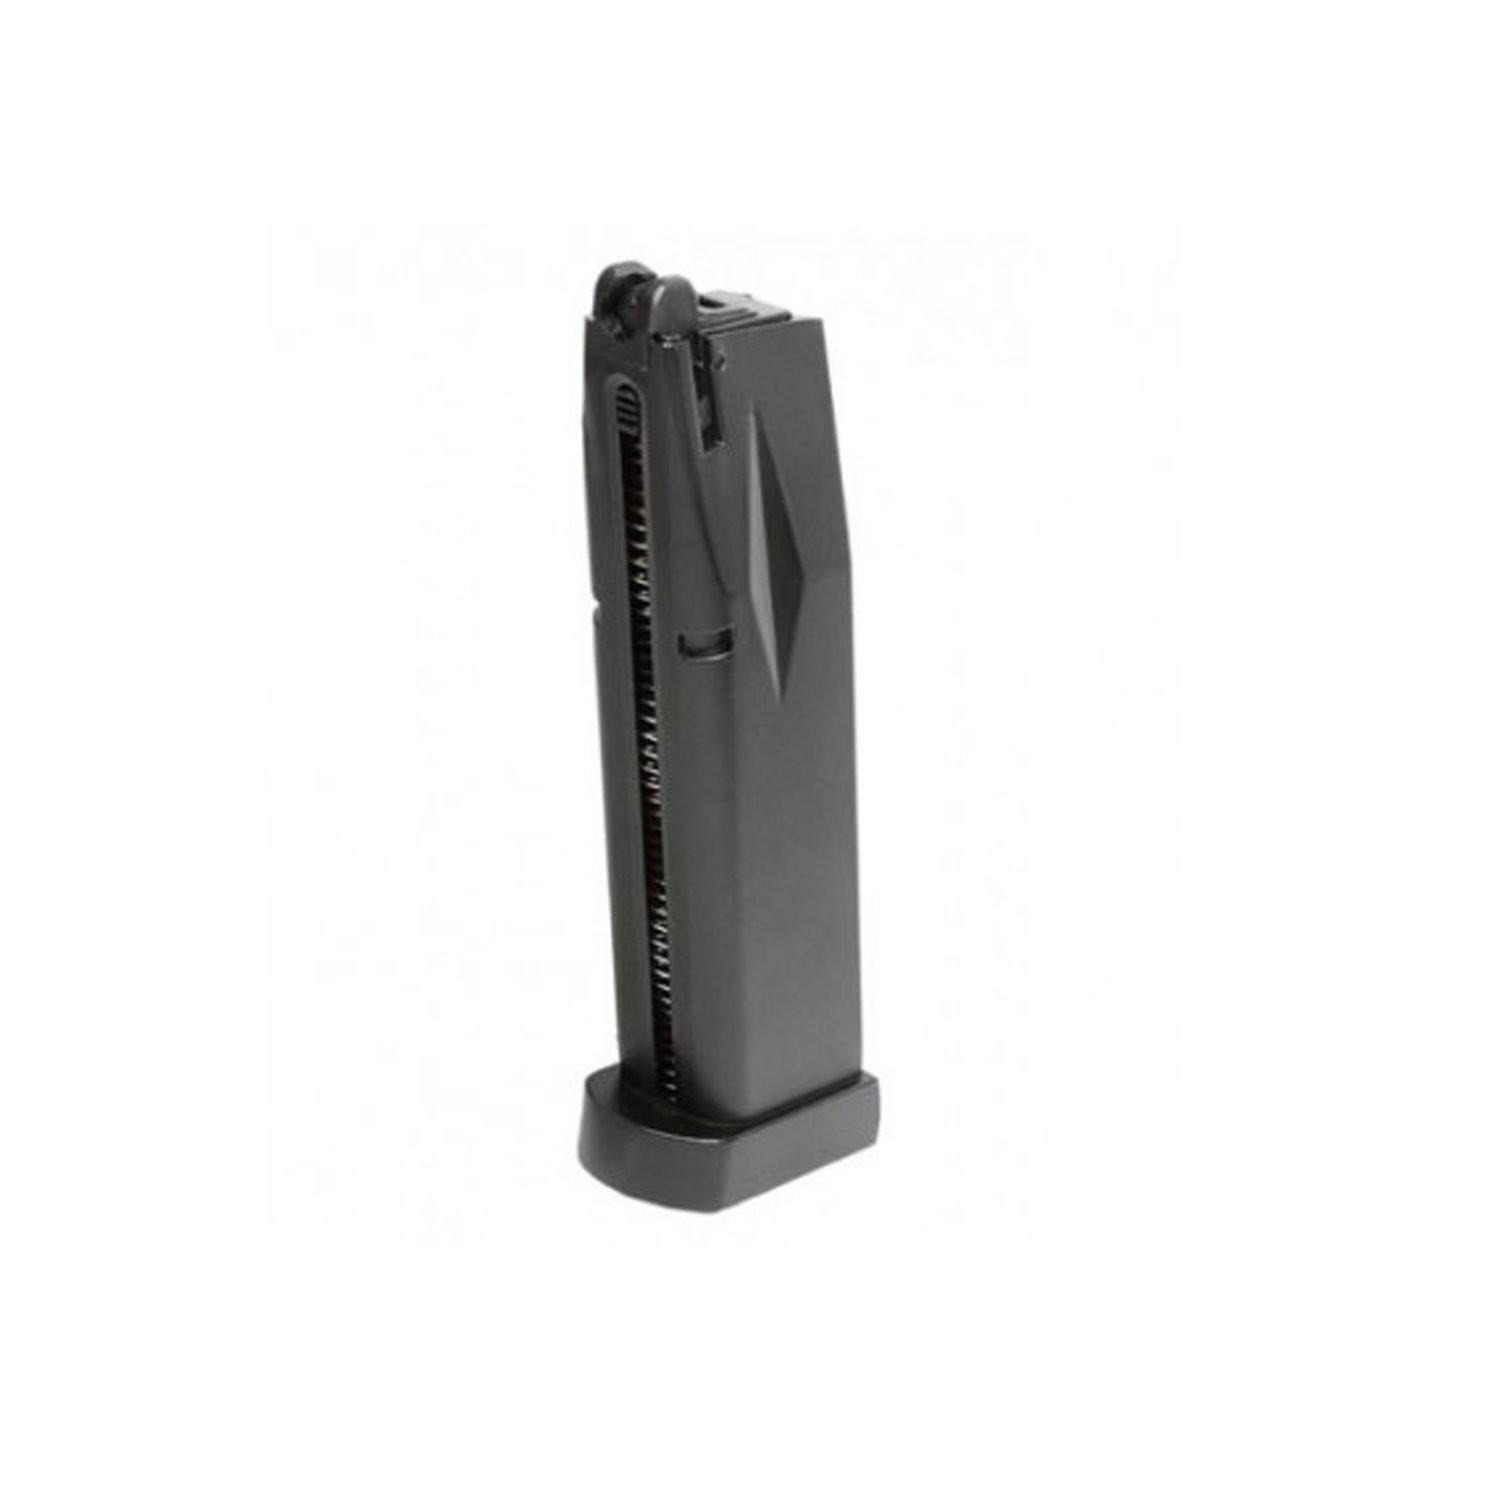 MAGAZINE AIRSOFT CO2 P/ SIG SAUER P226 XFIVE - CYBERGUN